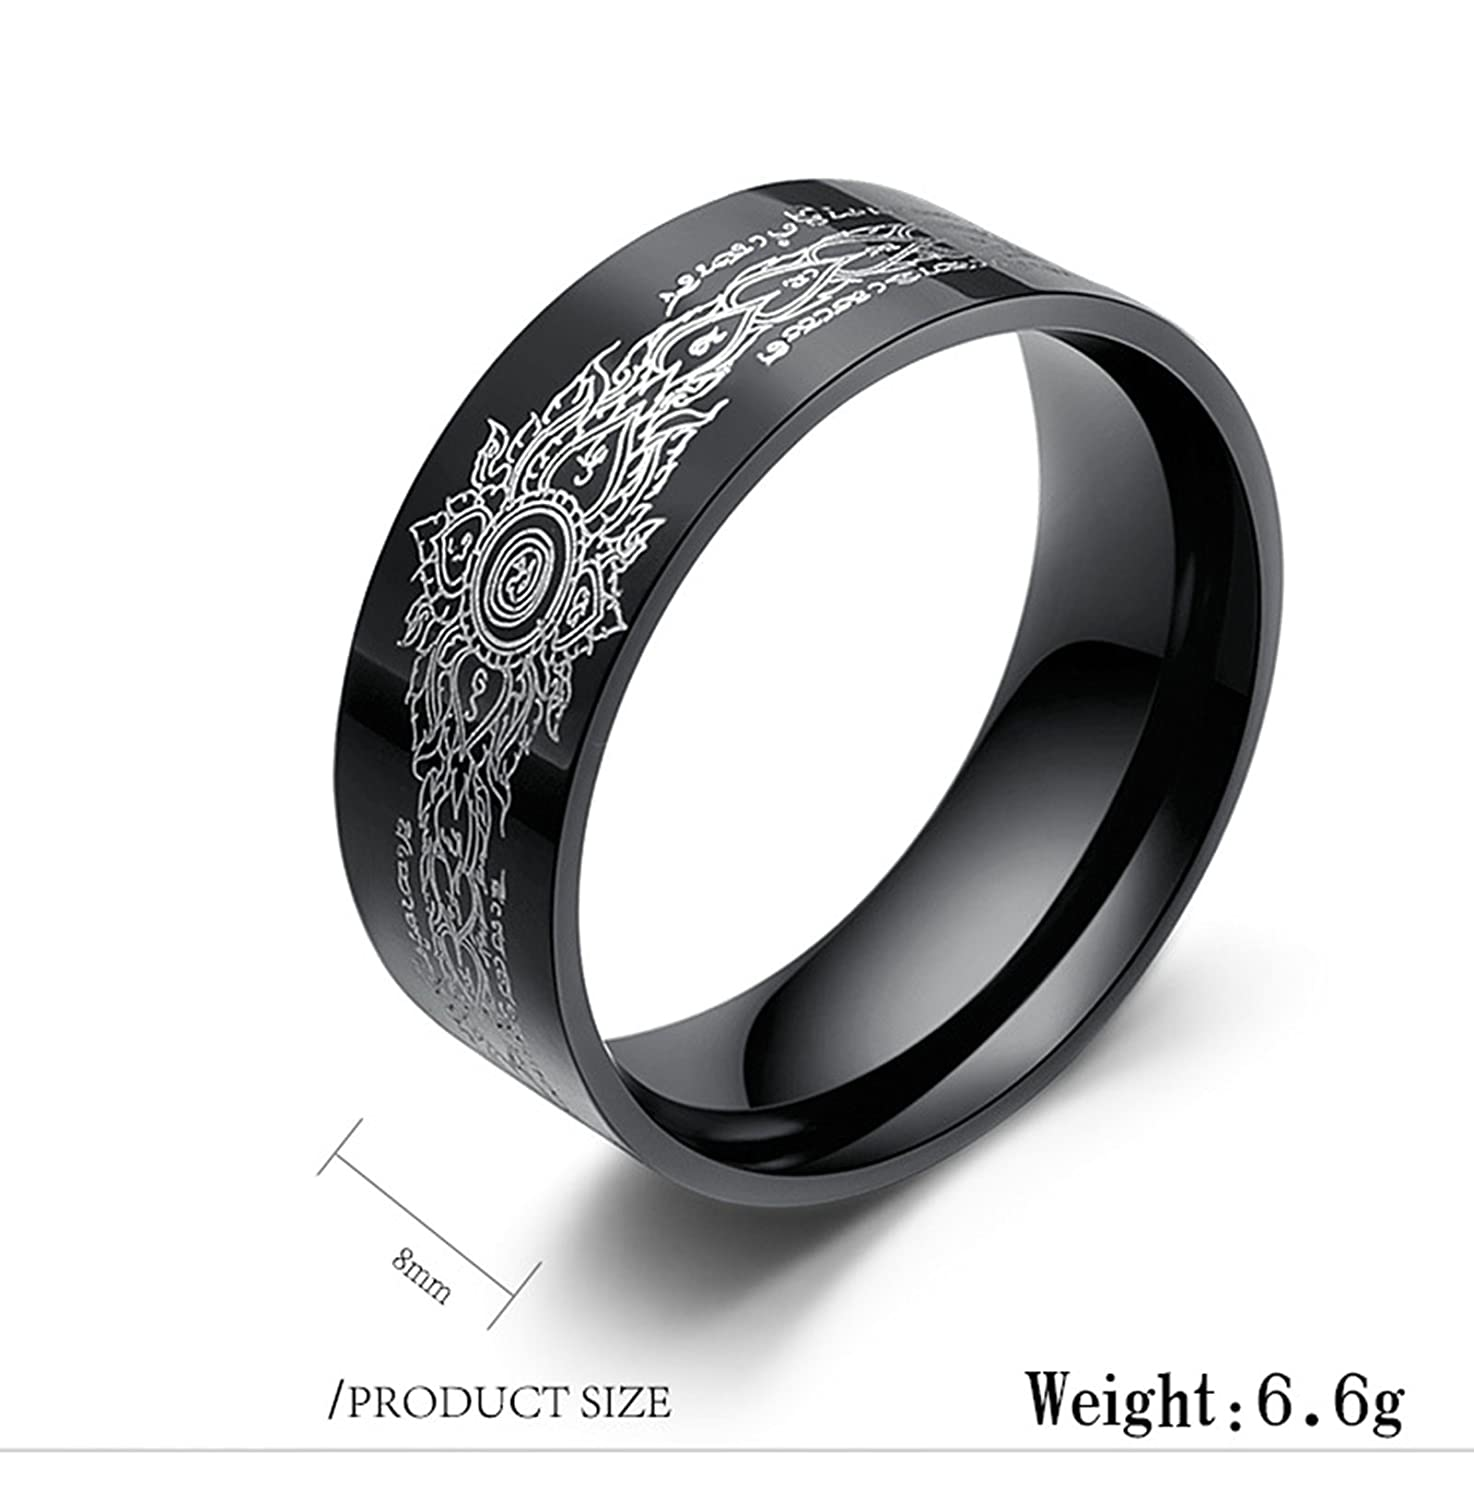 Bishilin Stainless Steel Rings Wedding Buddhism Religious Wedding Rings Black Size 10